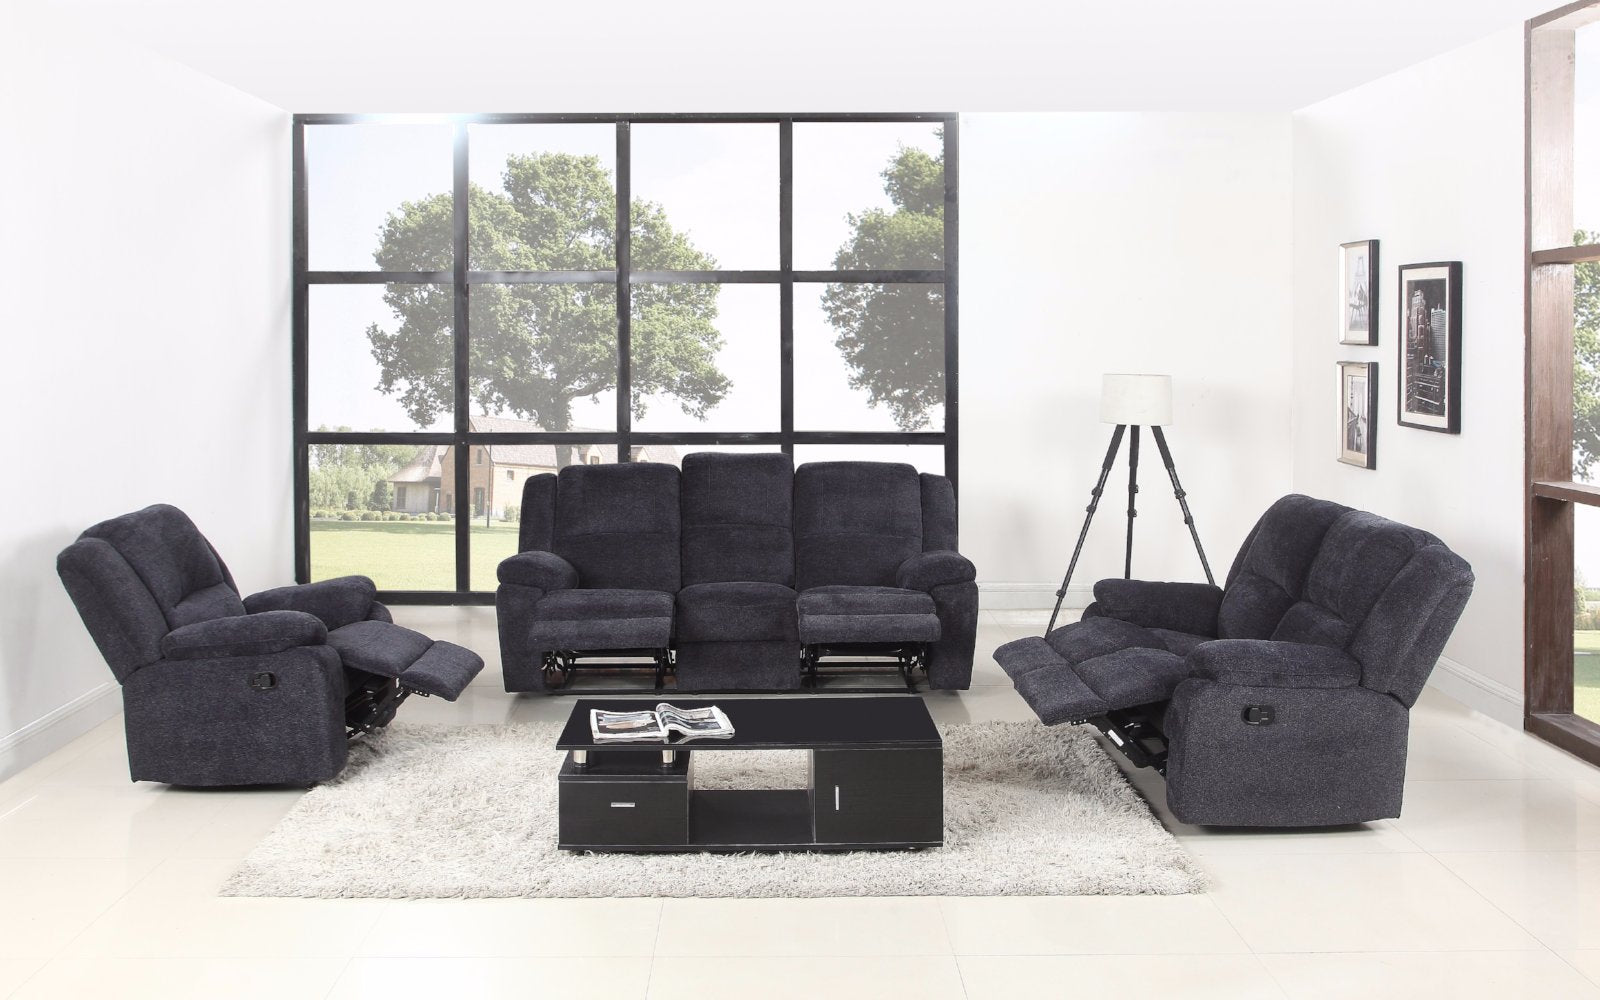 Captivating Asturias Traditional Classic 3 Piece Microfiber Recliner Living Room Set    Dark Grey ...